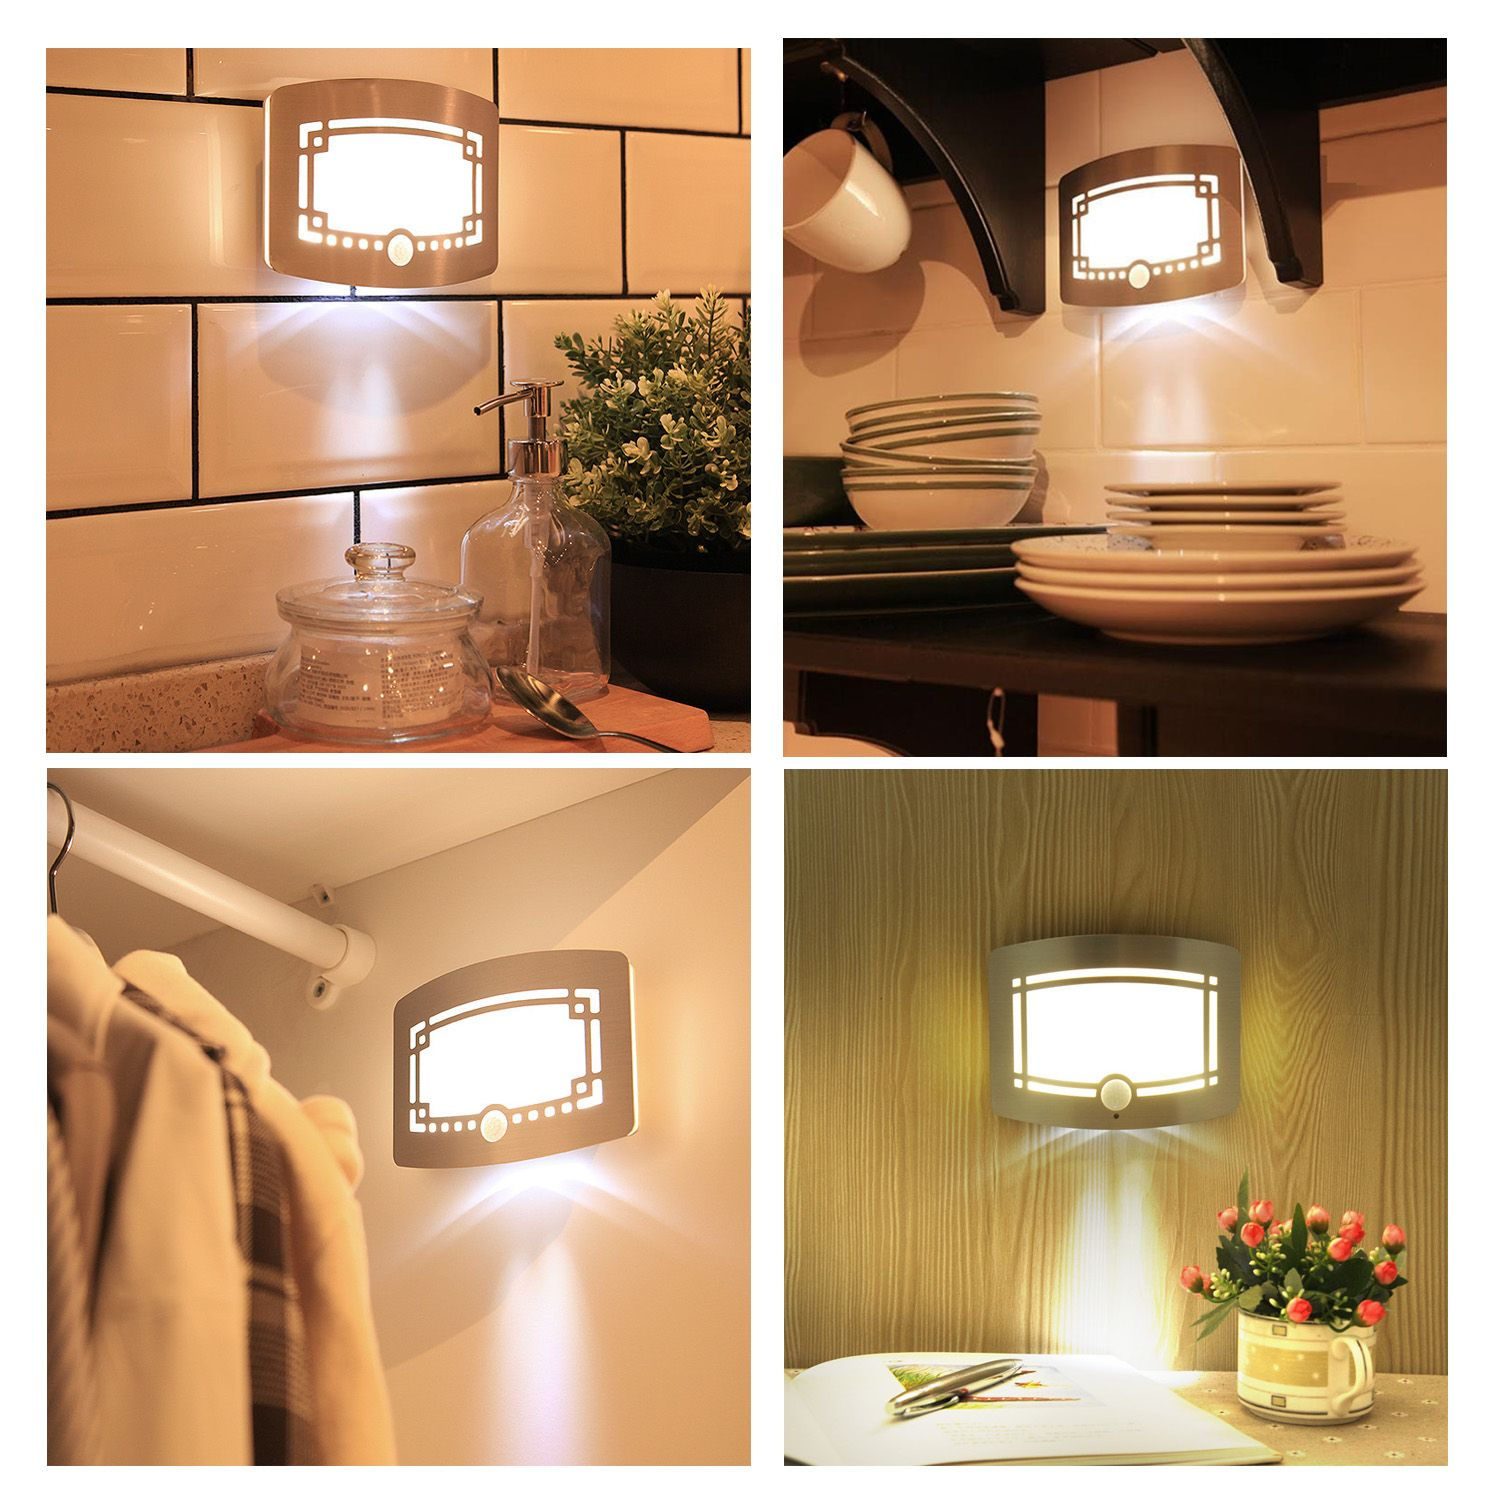 Motion Sensing Wall Lights, Battery Operated Wall Night Lamp For